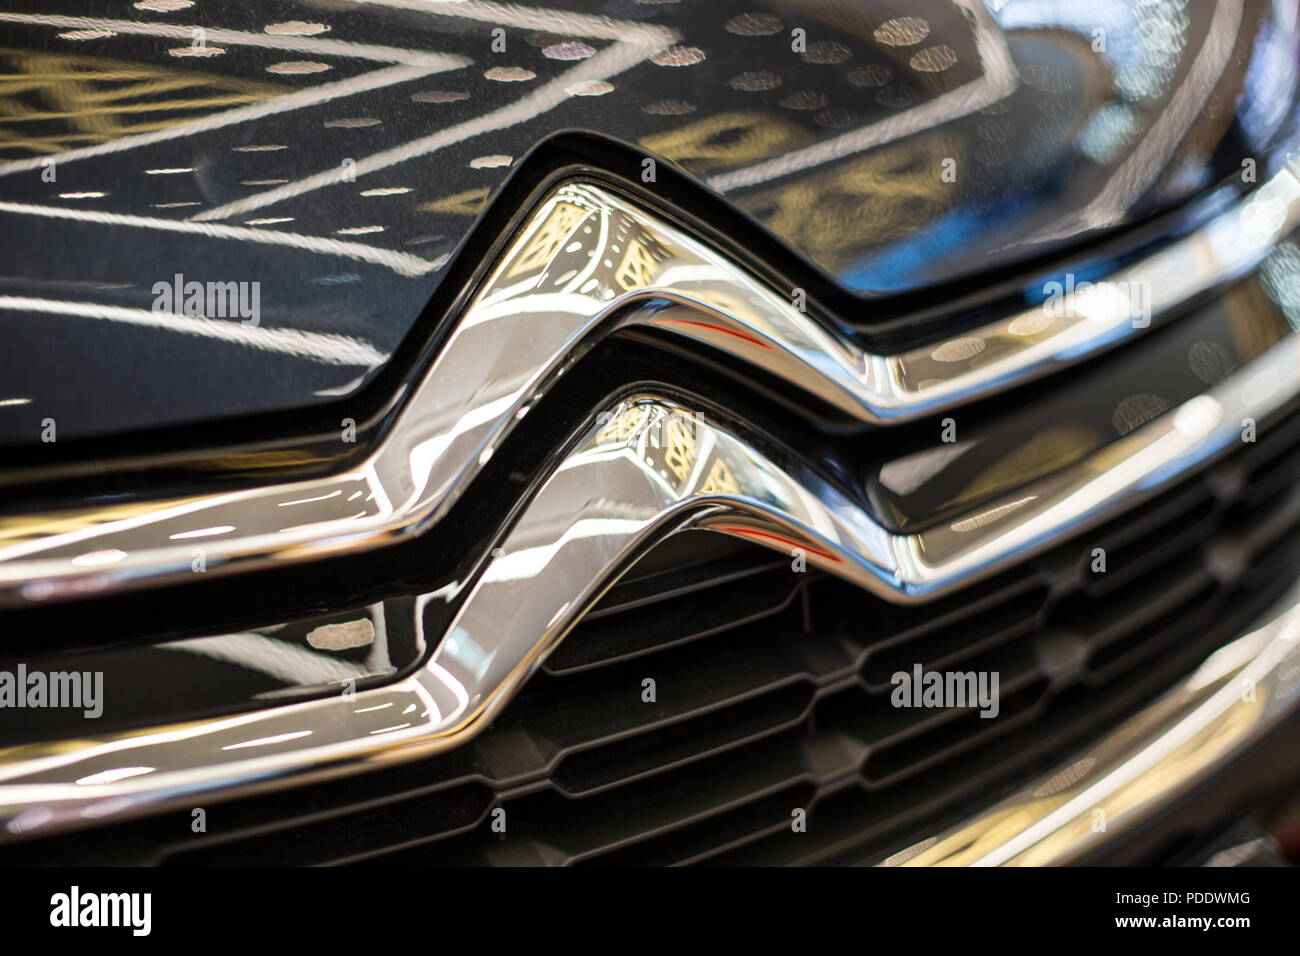 France, Paris August 1, 2018 Citroen logo on Citroen c4 - Stock Image